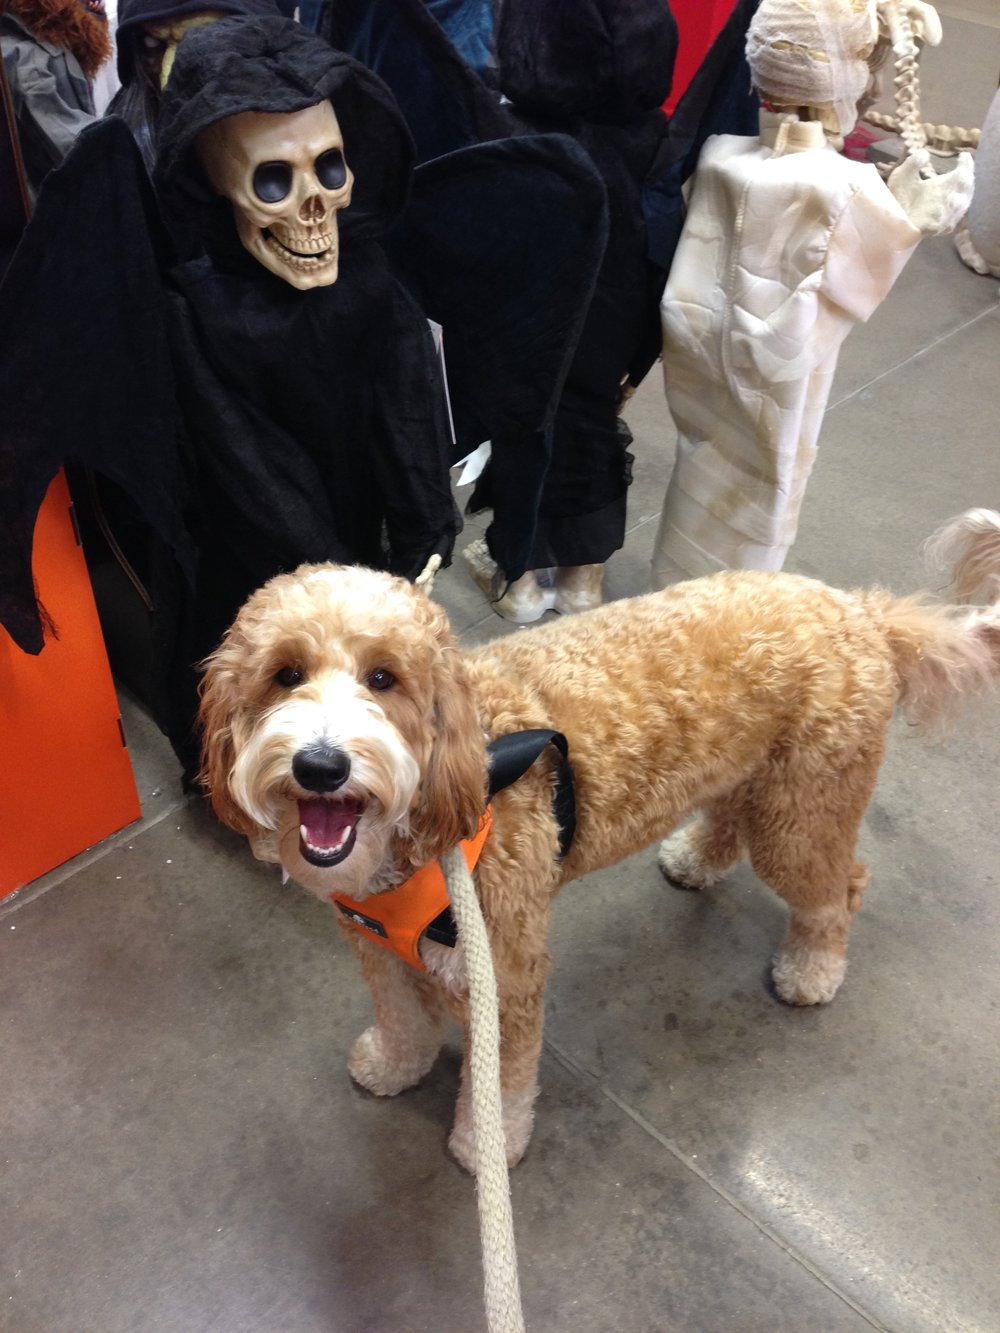 Bernie loved sniffing the mummies, ghosts, ghouls, witches, and pumpkins on display at Home Depot.